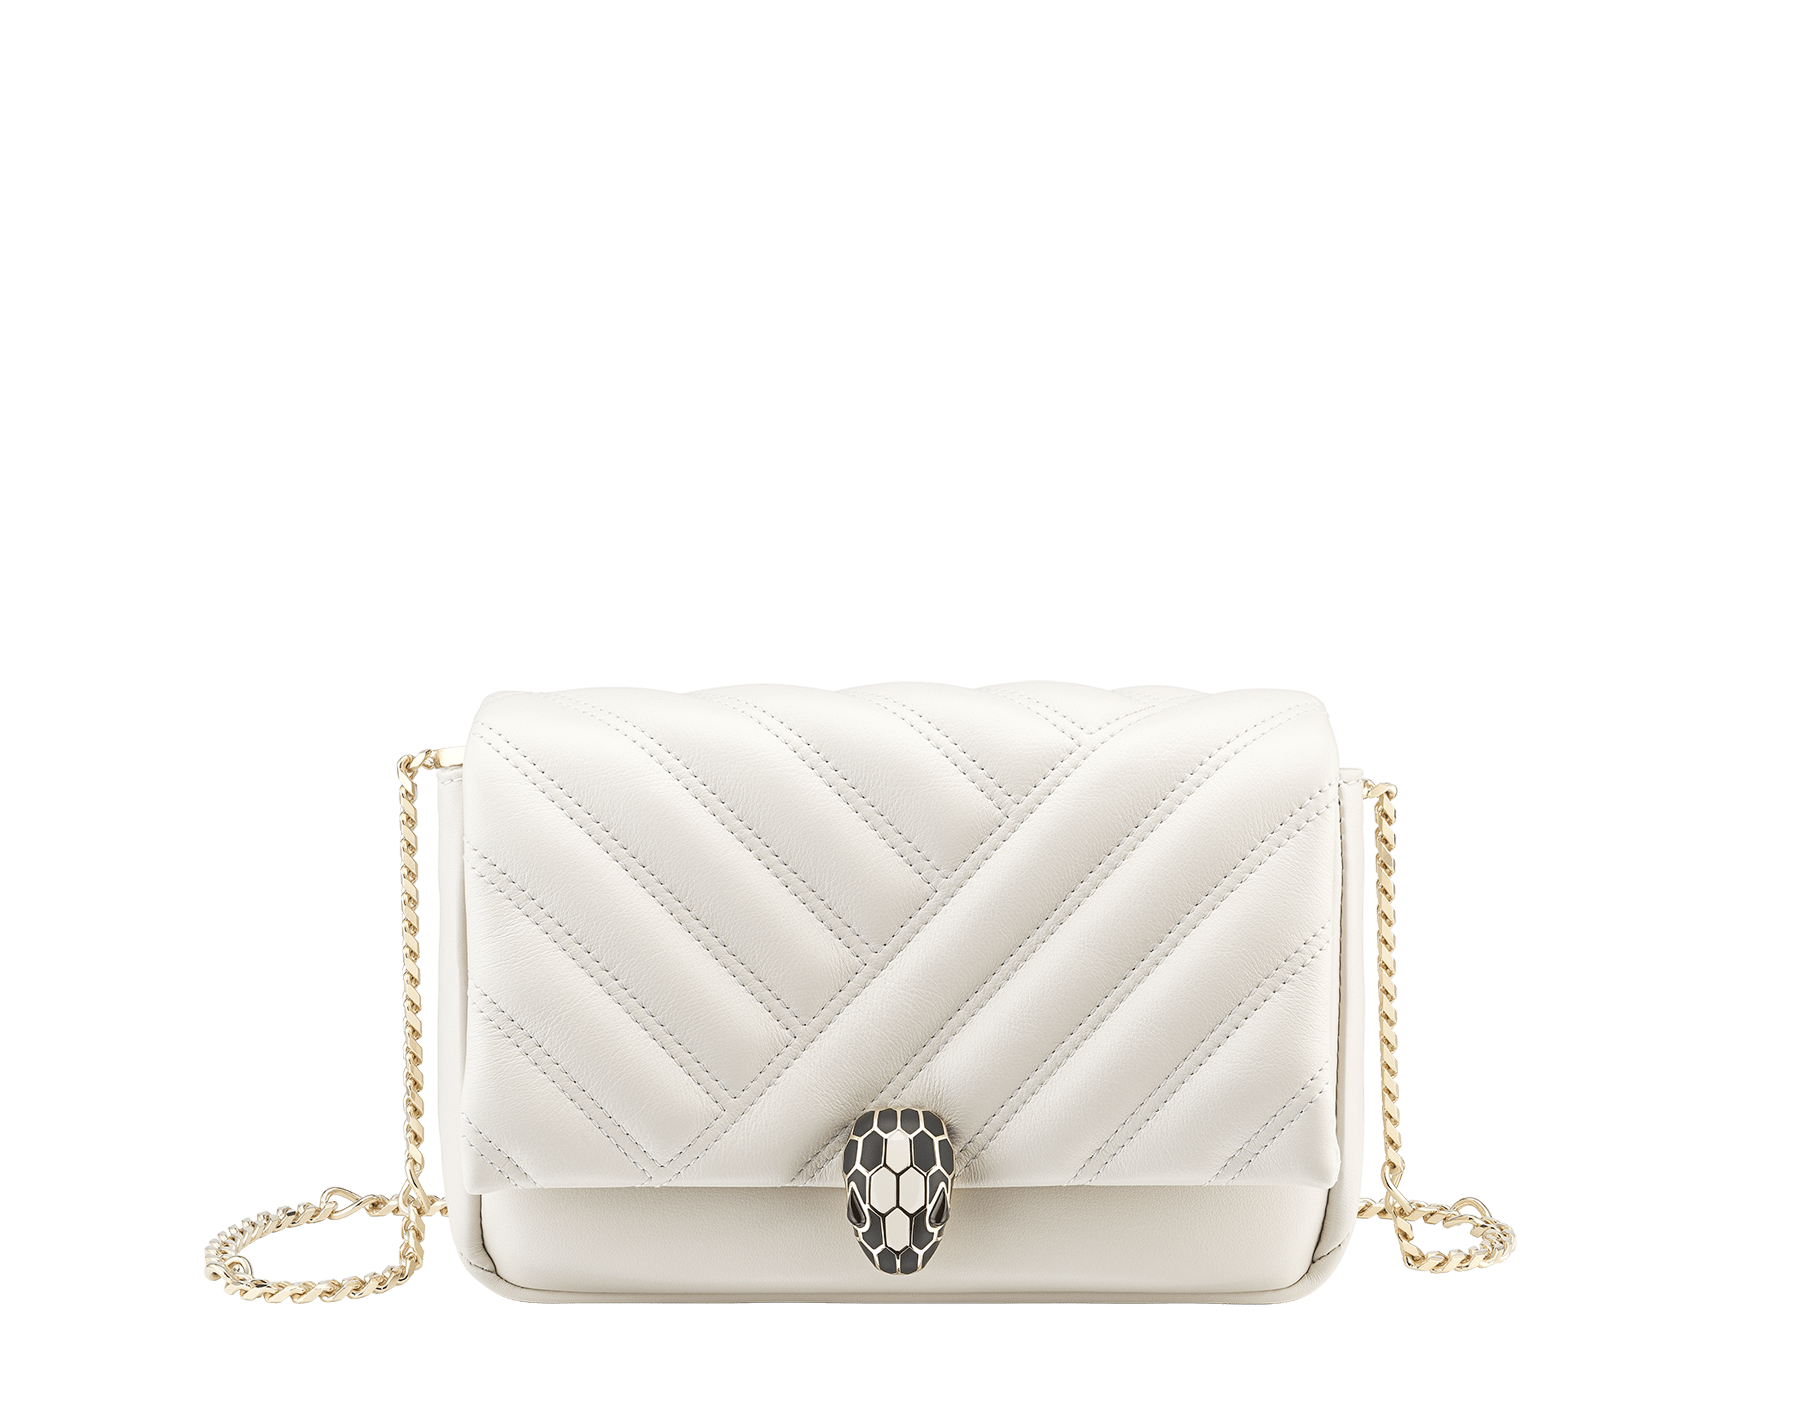 Serpenti Cabochon micro bag in soft matelassé white agate calf leather, with a graphic motif. Brass light gold plated tempting snake head closure in black and white agate enamel and black onyx eyes. 288760 image 1